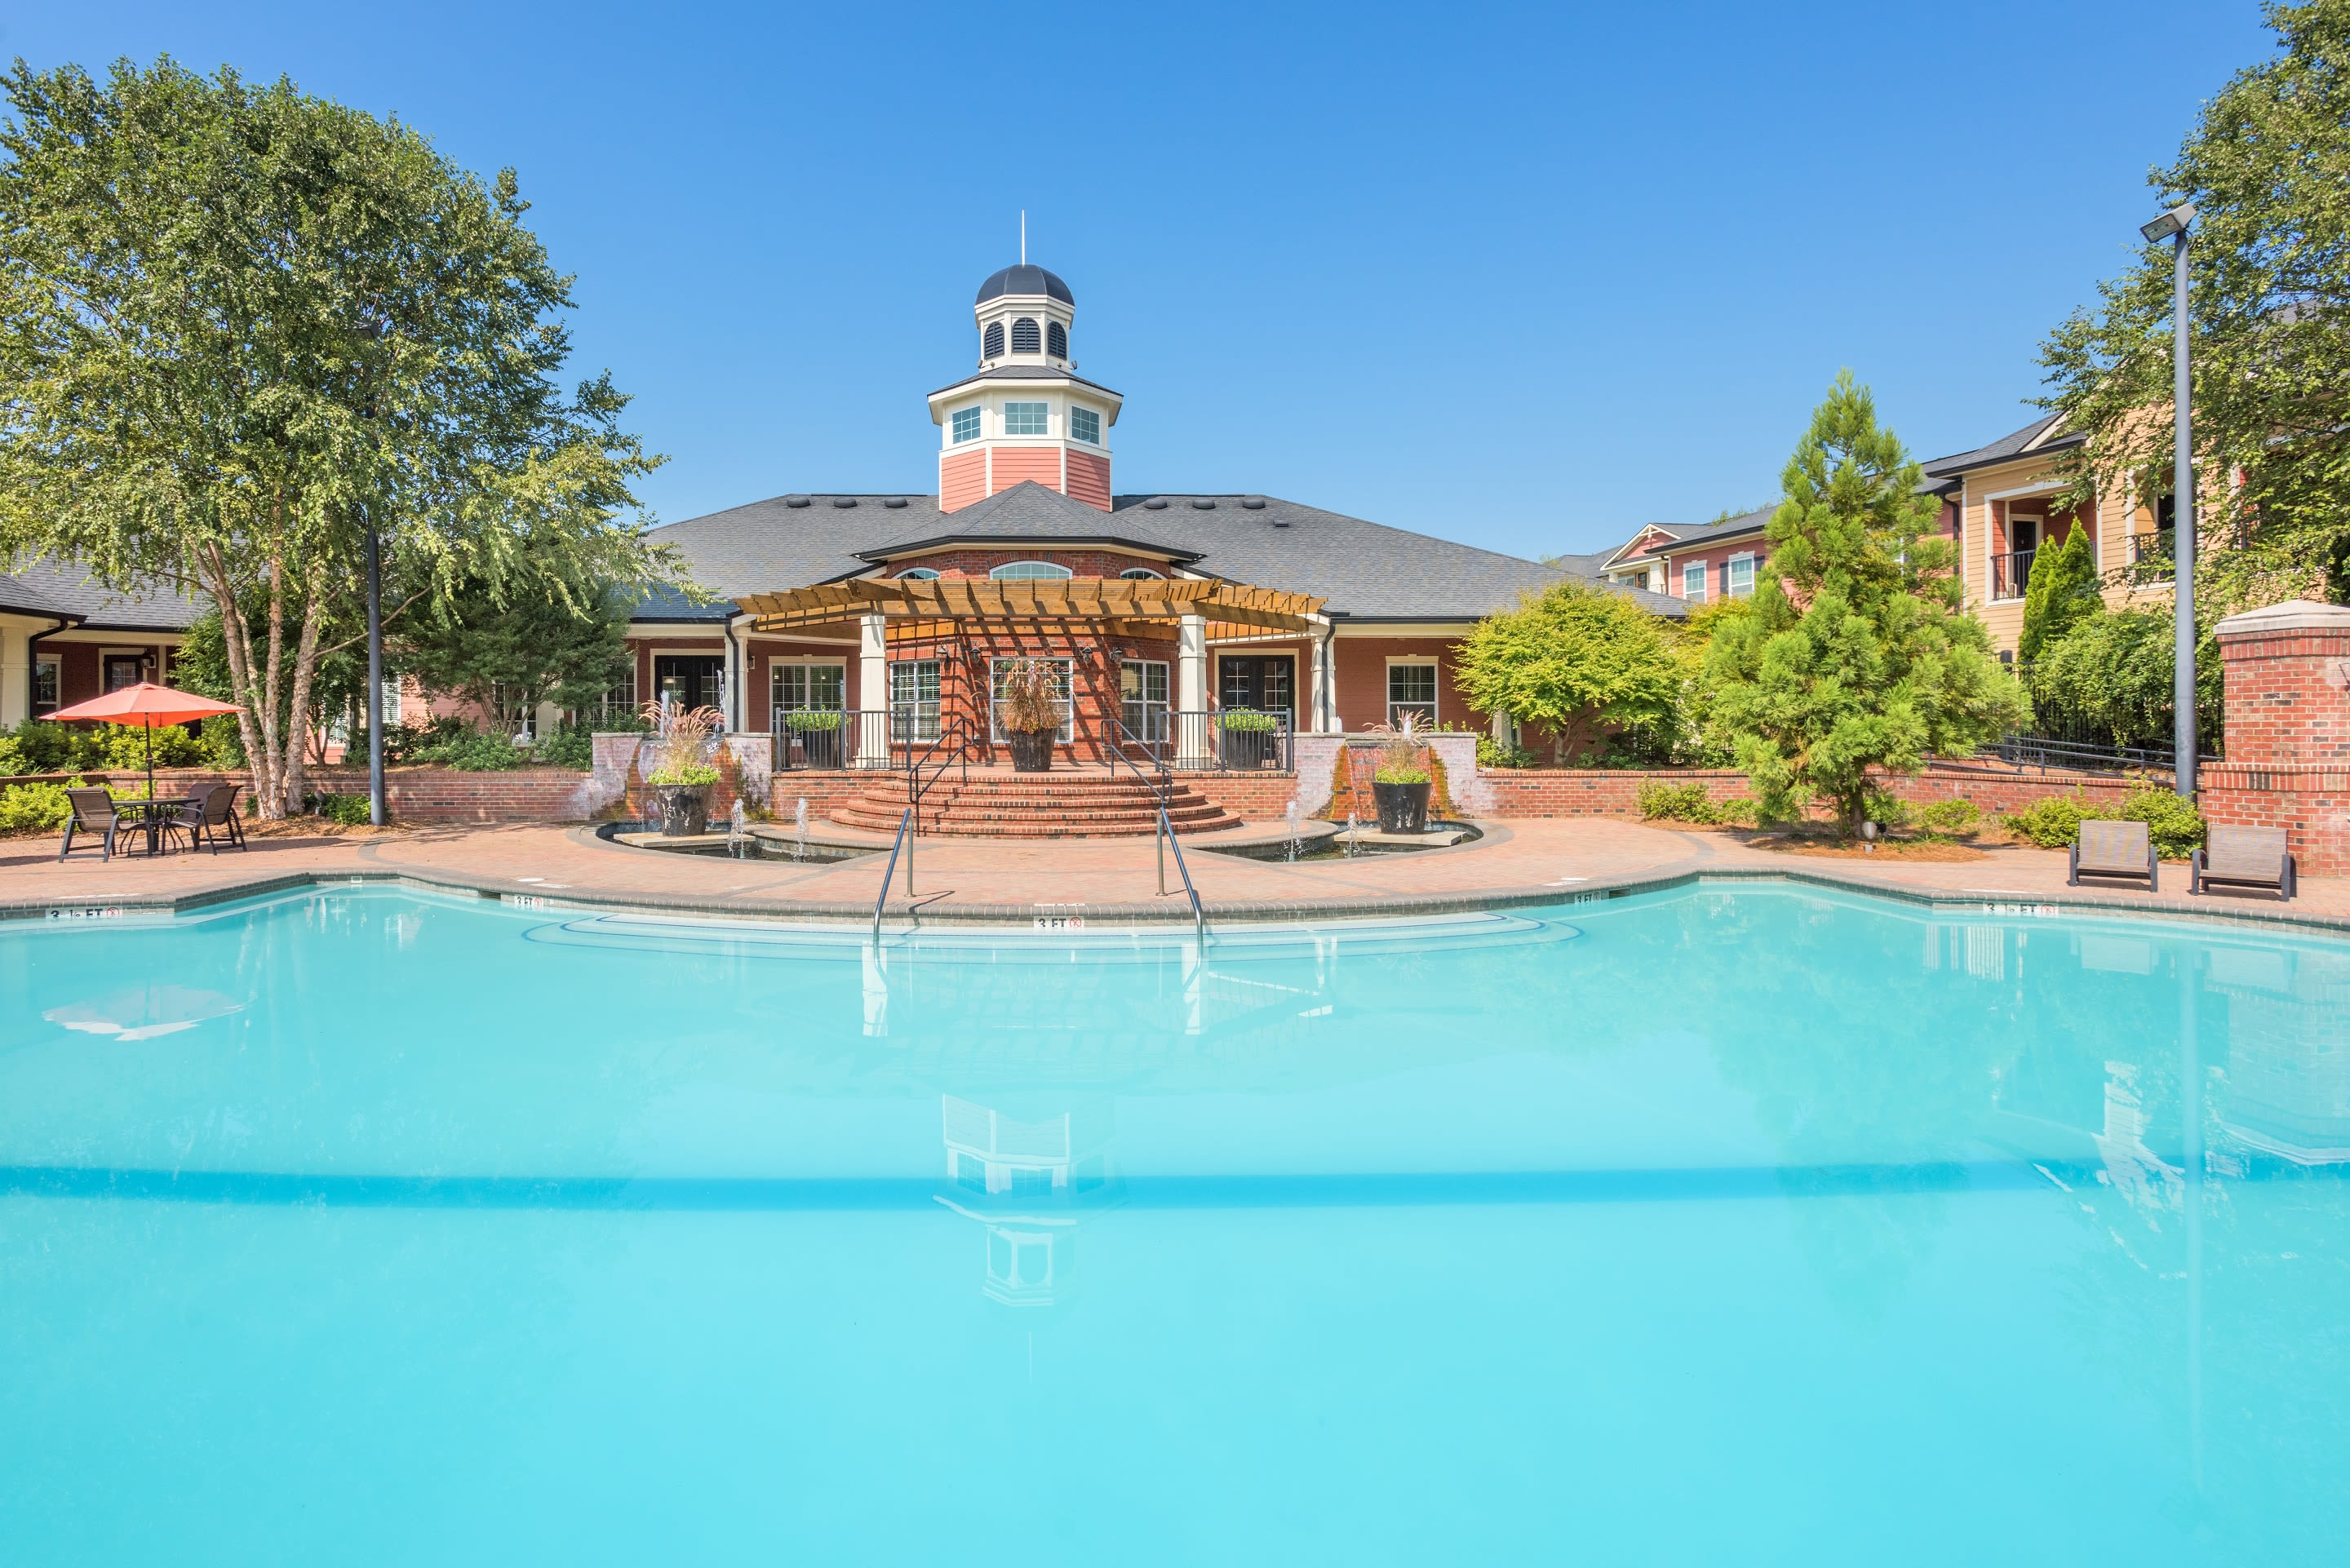 Relaxing pool at The Vive in Kannapolis, North Carolina